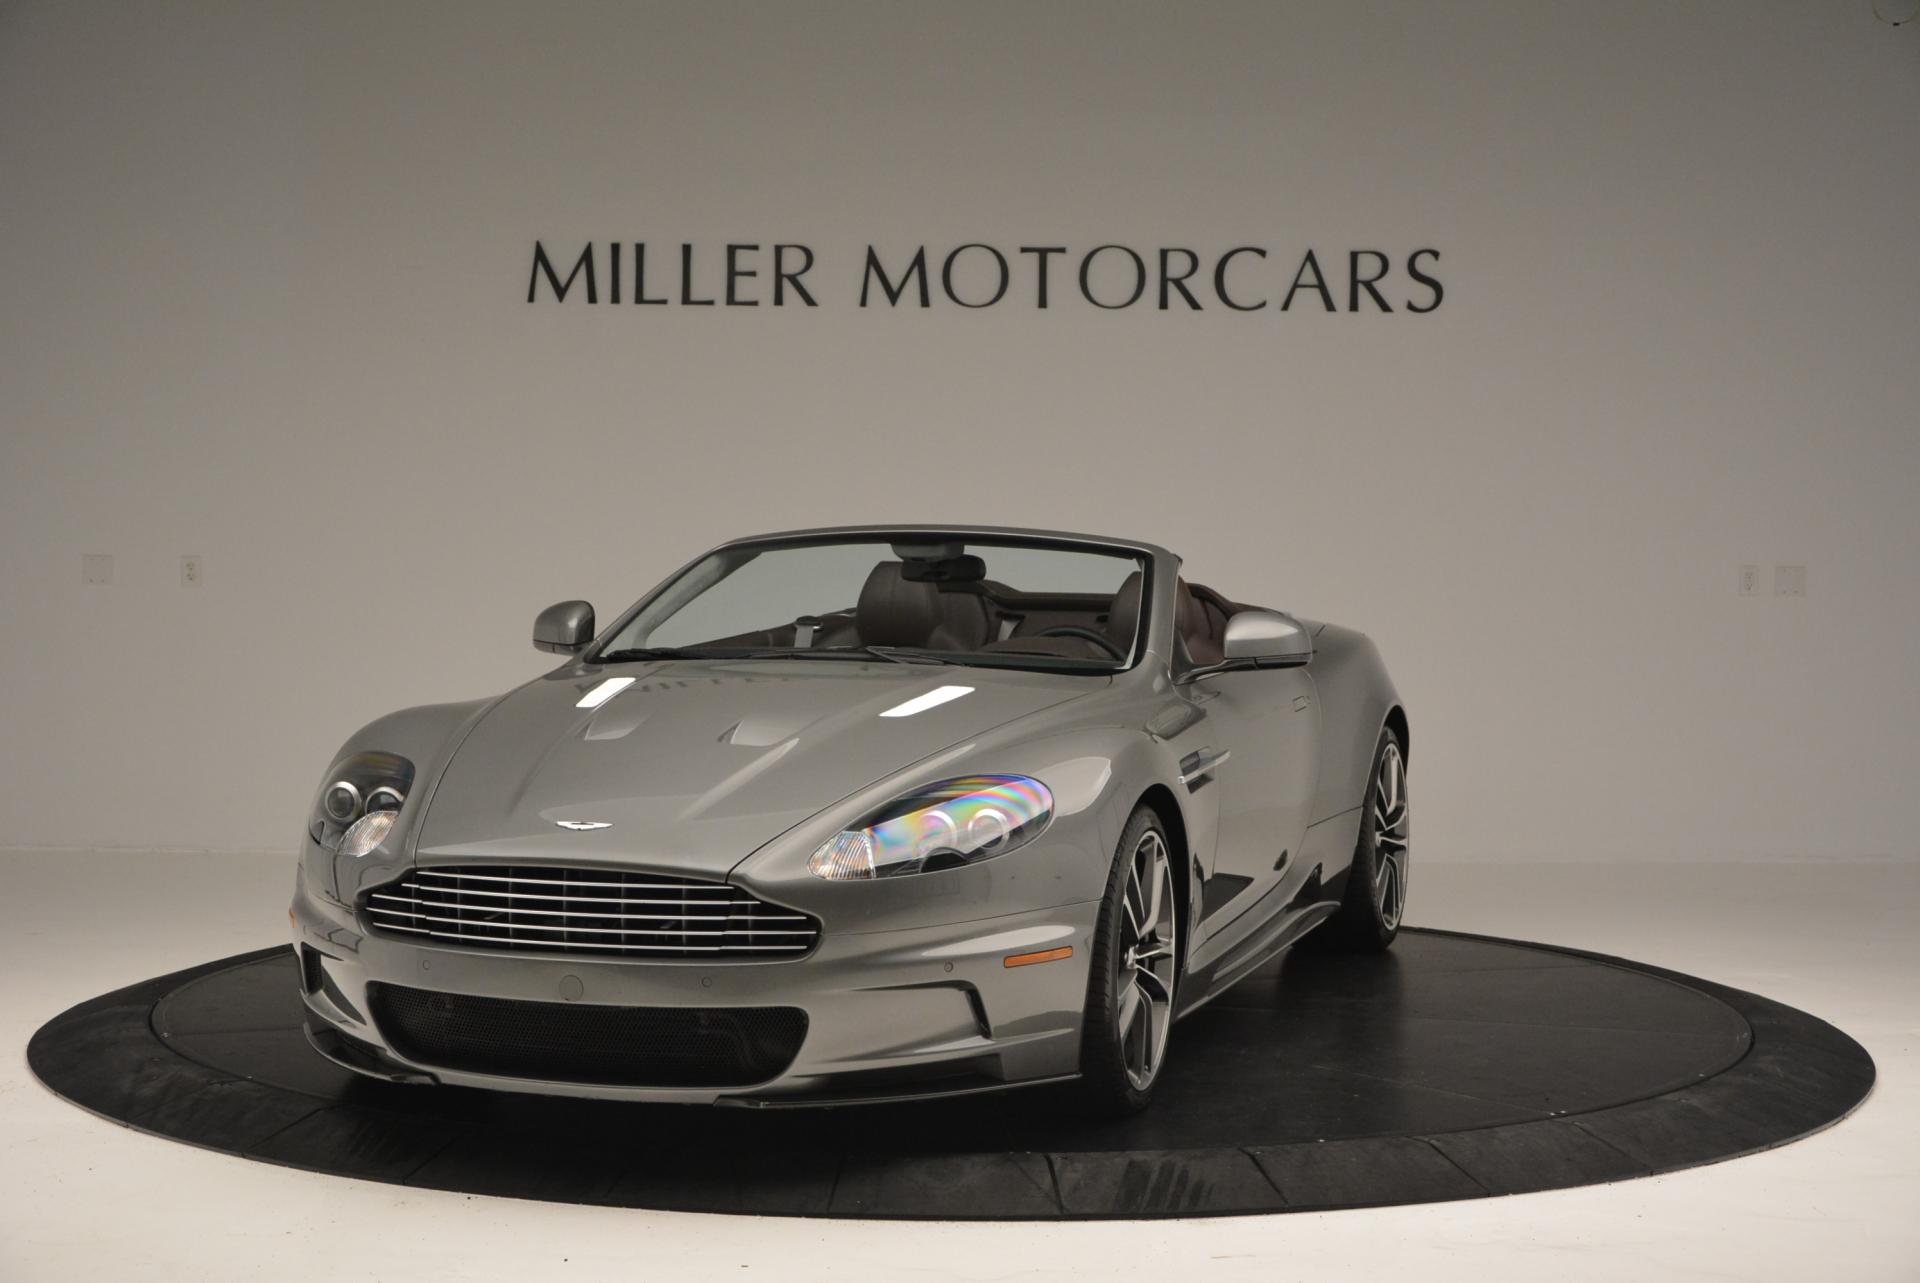 Used 2010 Aston Martin DBS Volante for sale Sold at Bentley Greenwich in Greenwich CT 06830 1